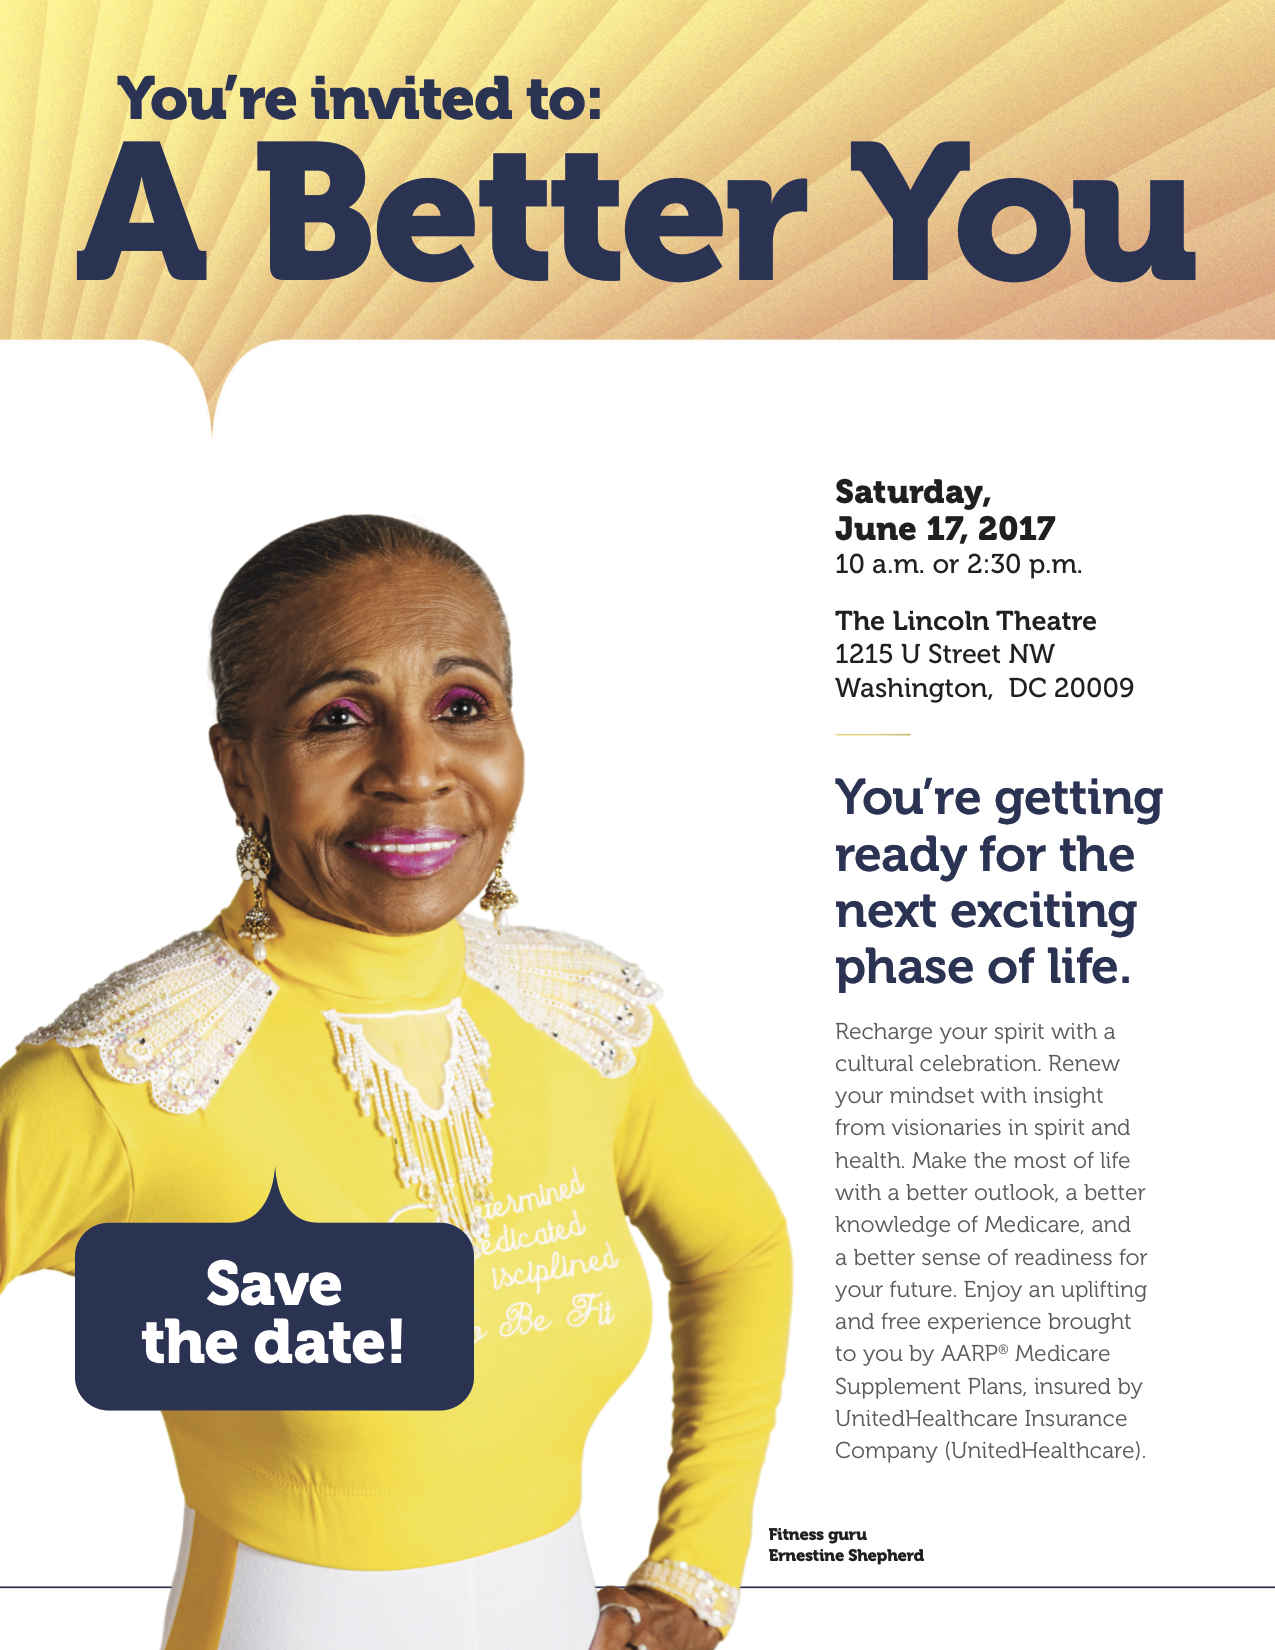 A Better You For Our Seniors Event June 17th